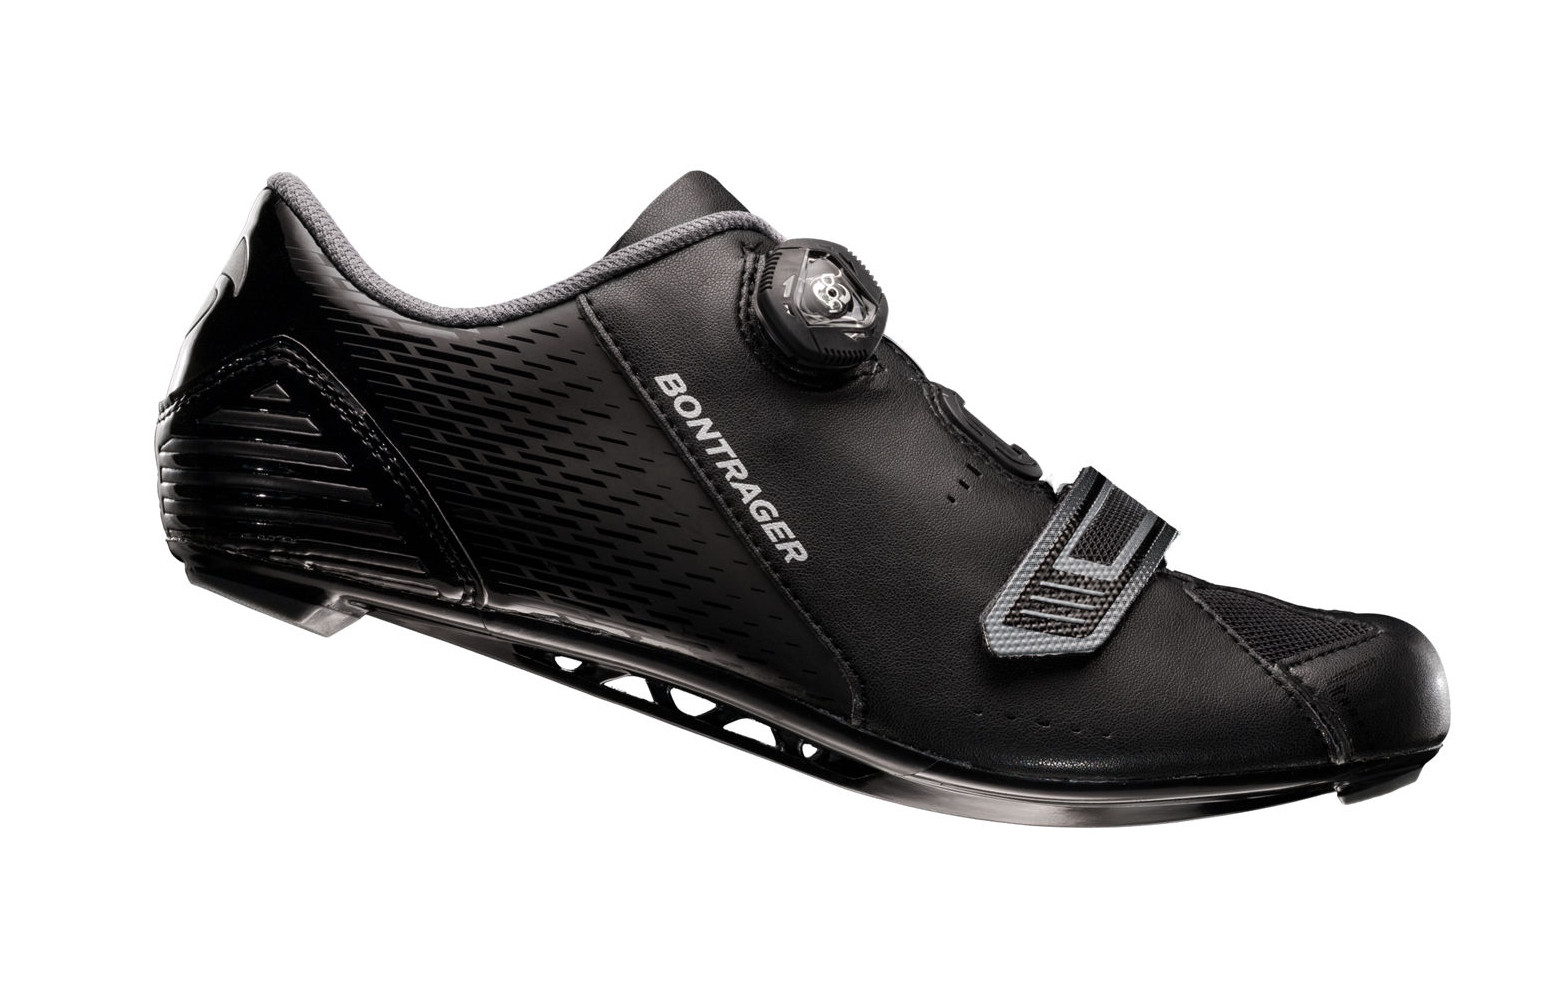 Reviews Of The Bontrager Specter Road Shoe